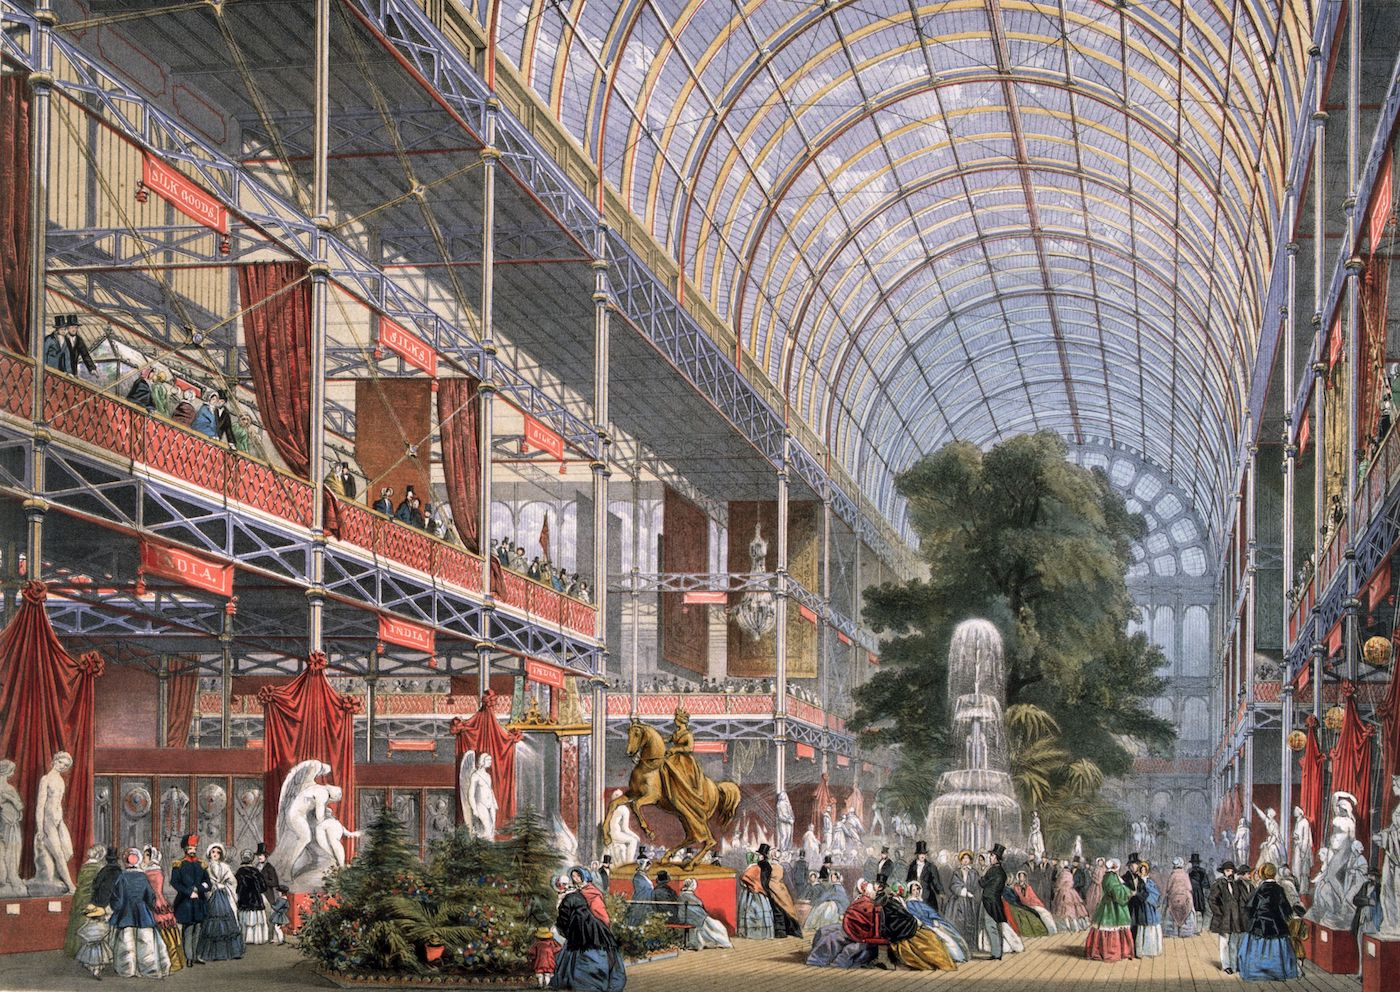 Illustration of a huge room with a glass ceiling and many exhibition stands.